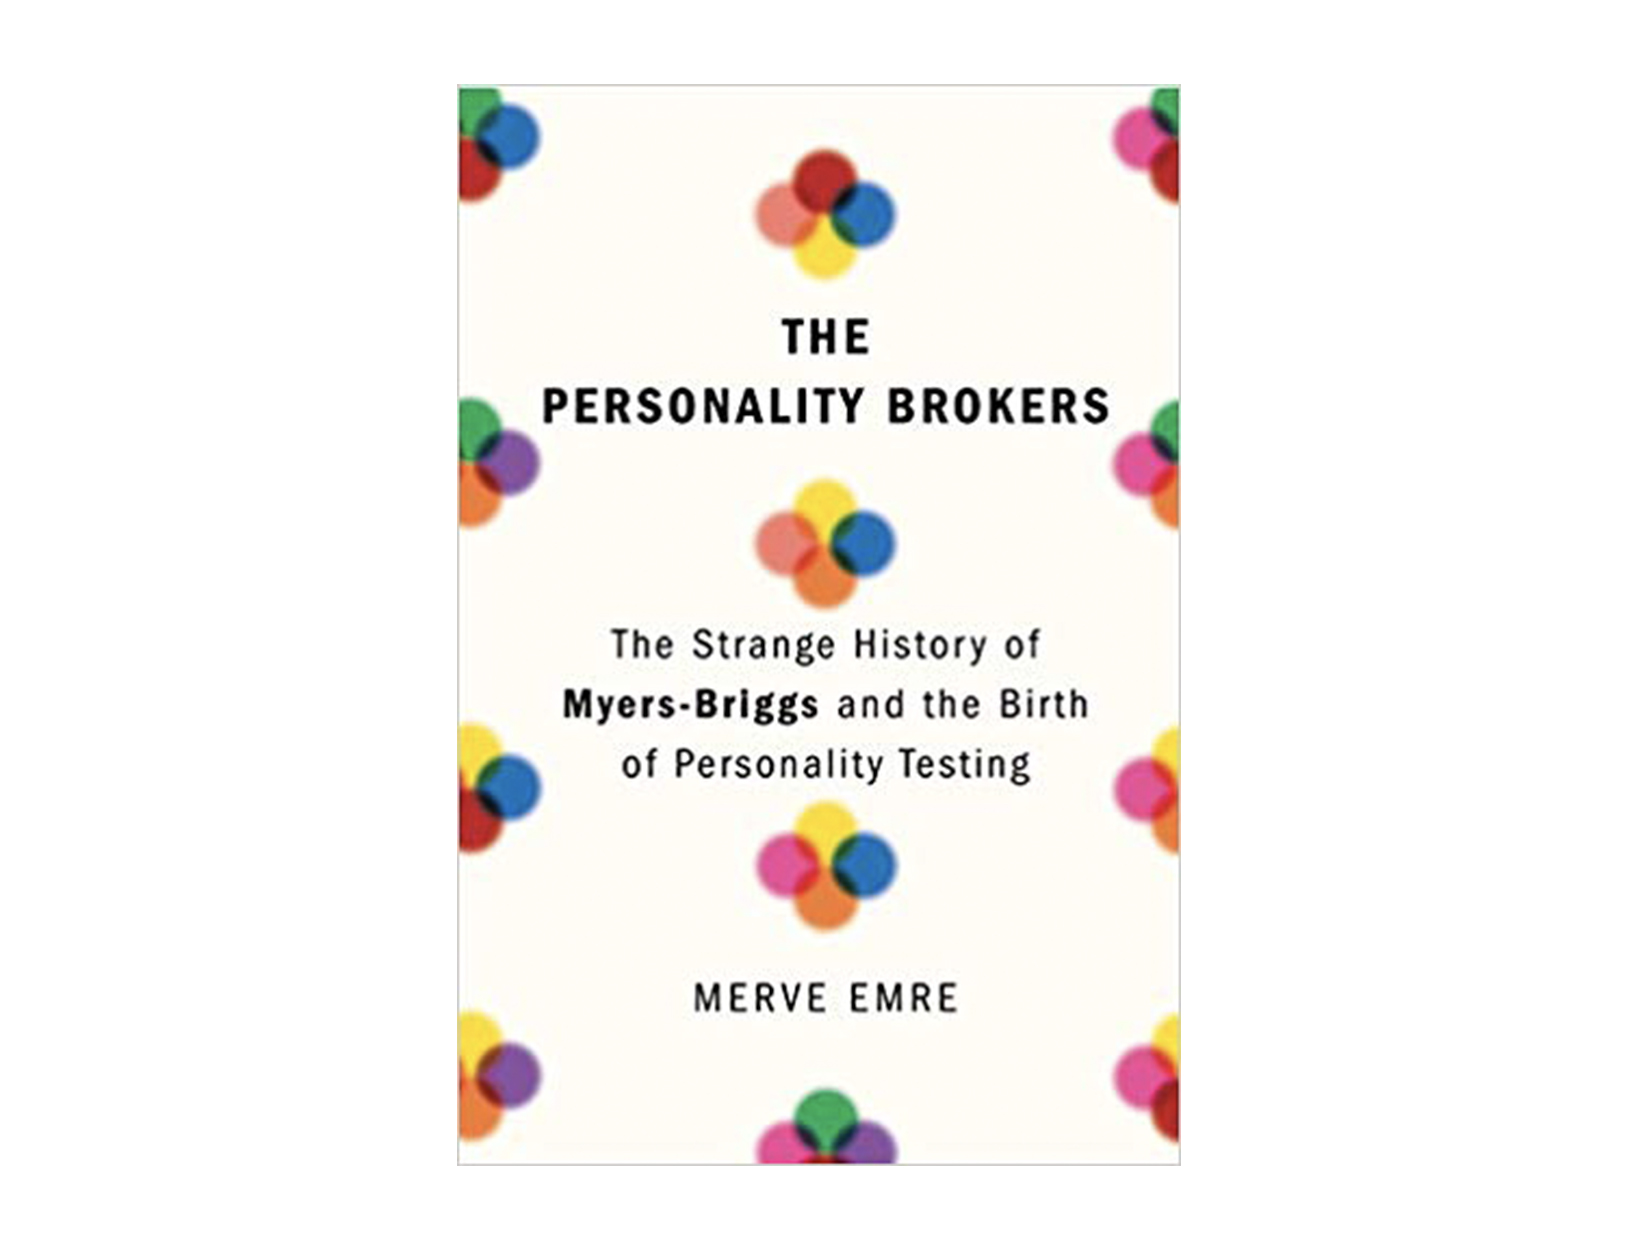 <em>The Personality Brokers</em> by Merve Emre